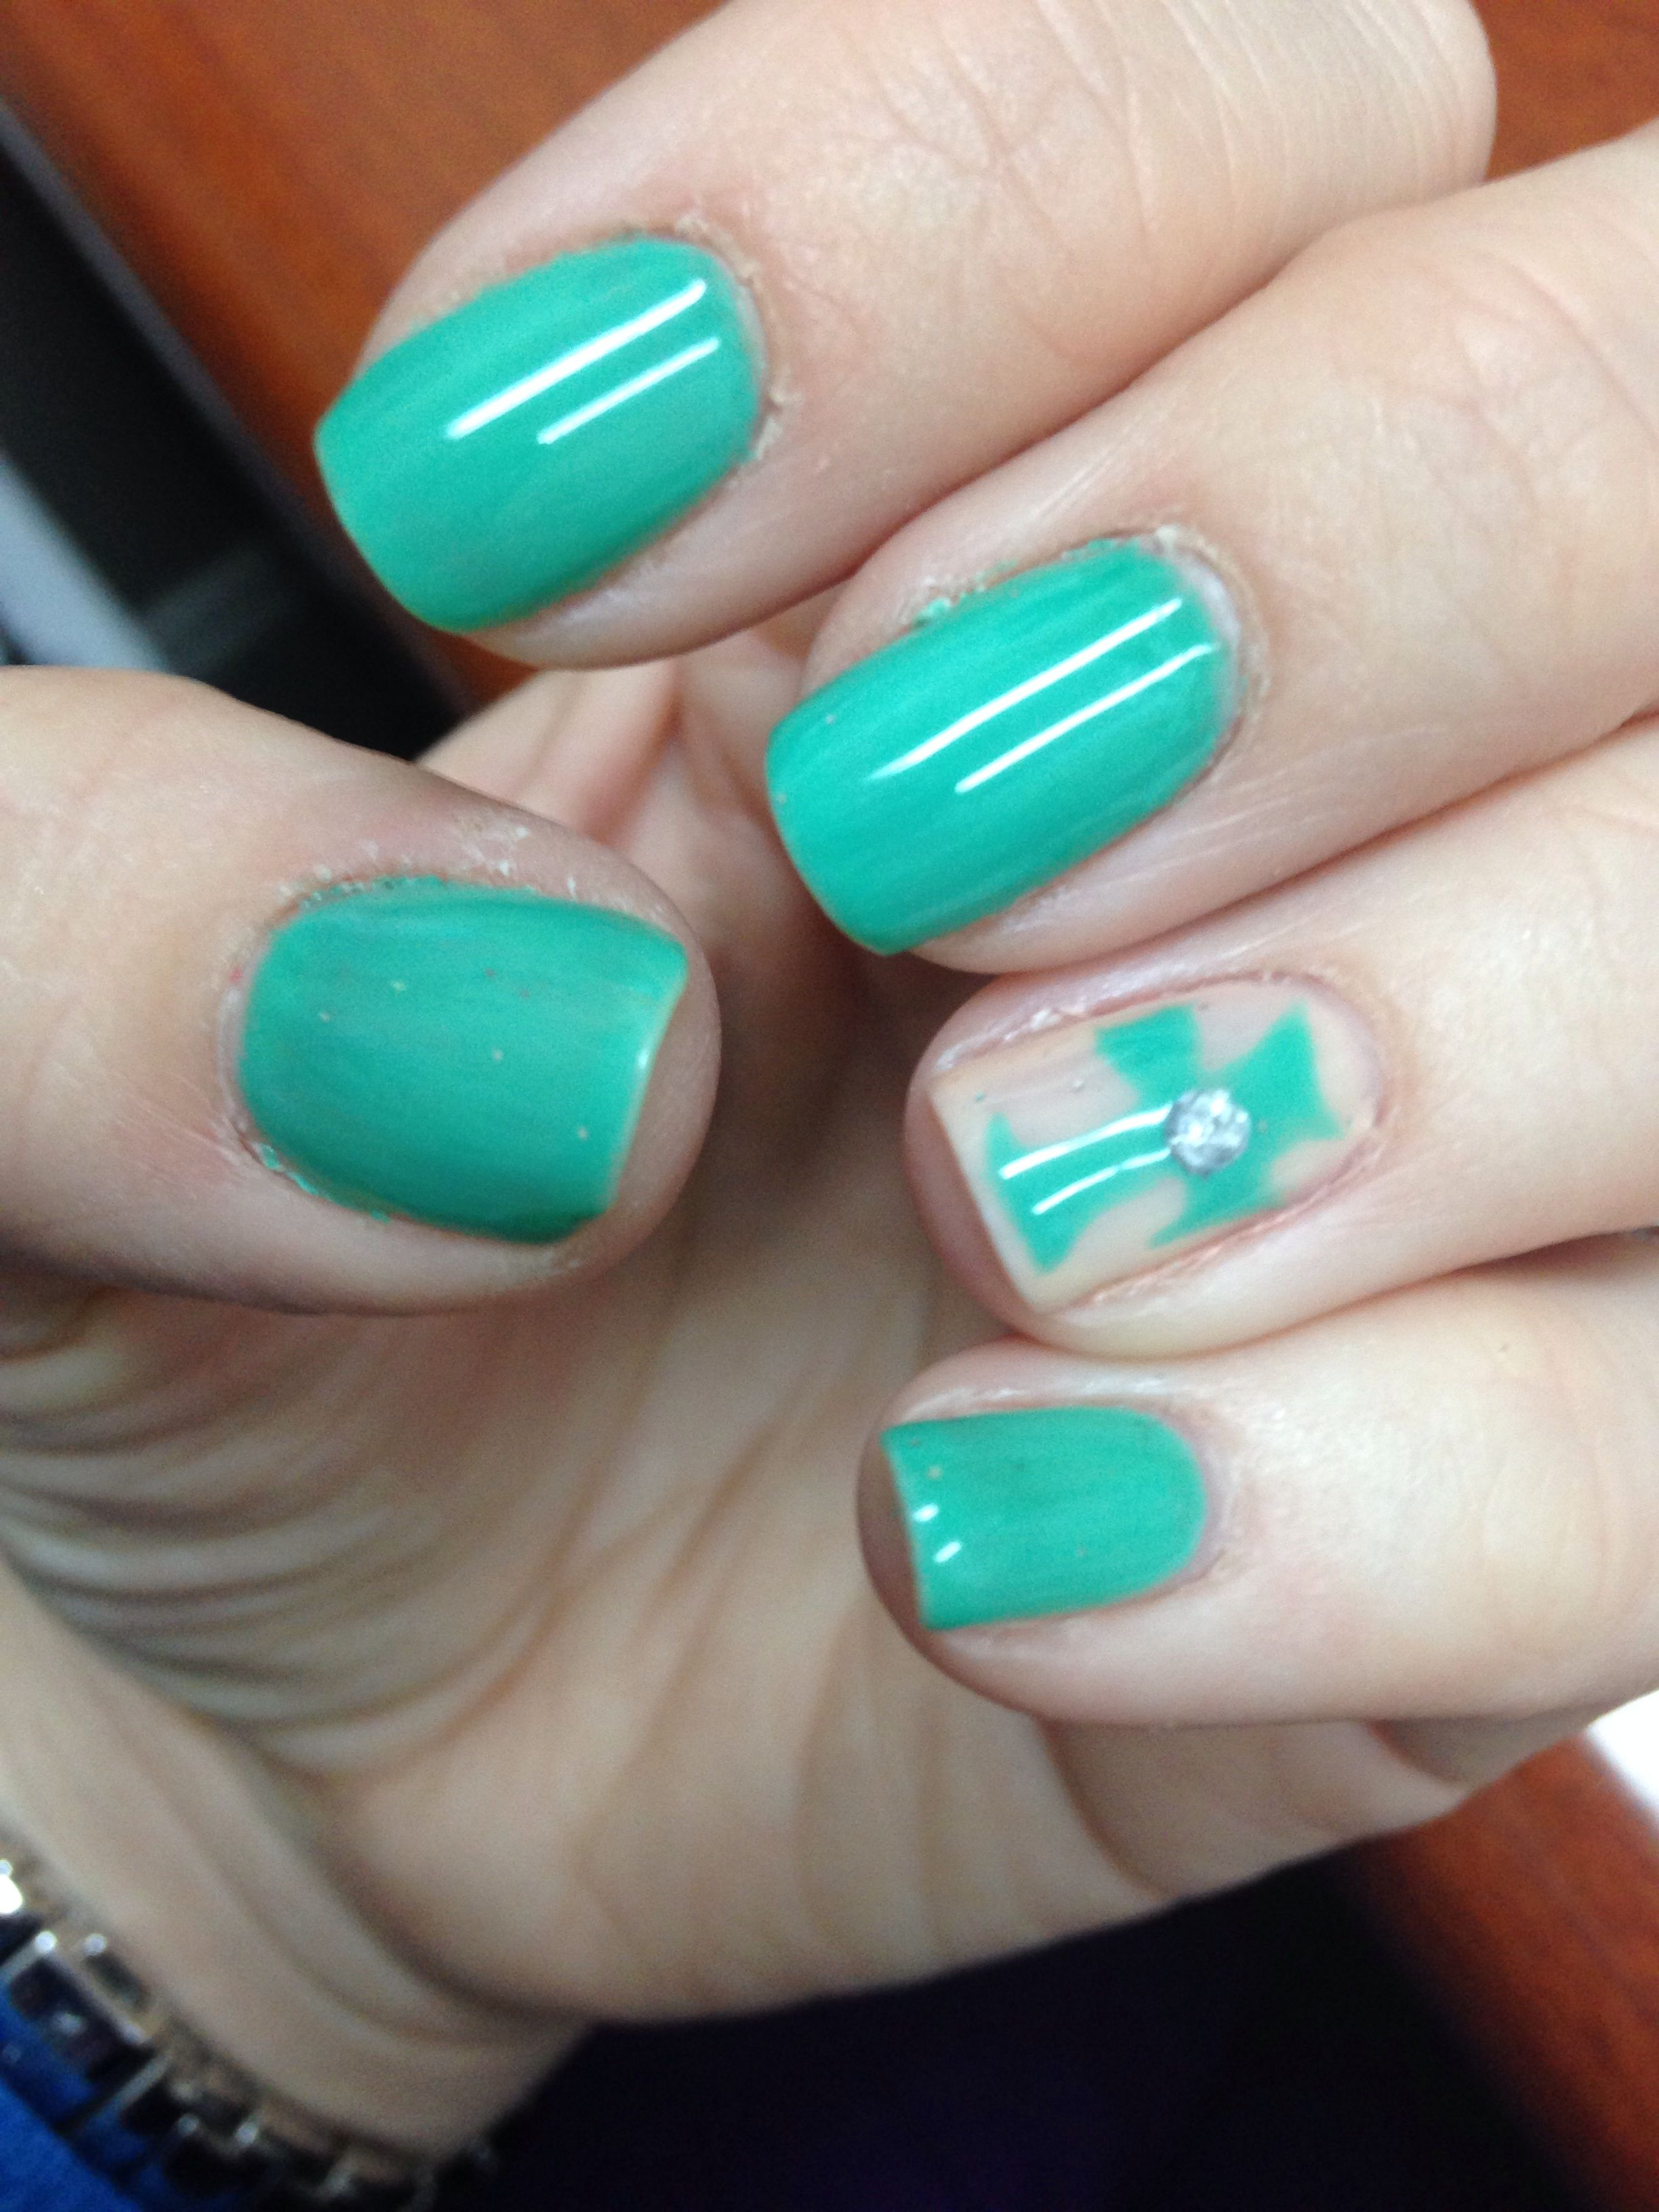 Nails With Cross Design These Nails Tho Pinterest Cross